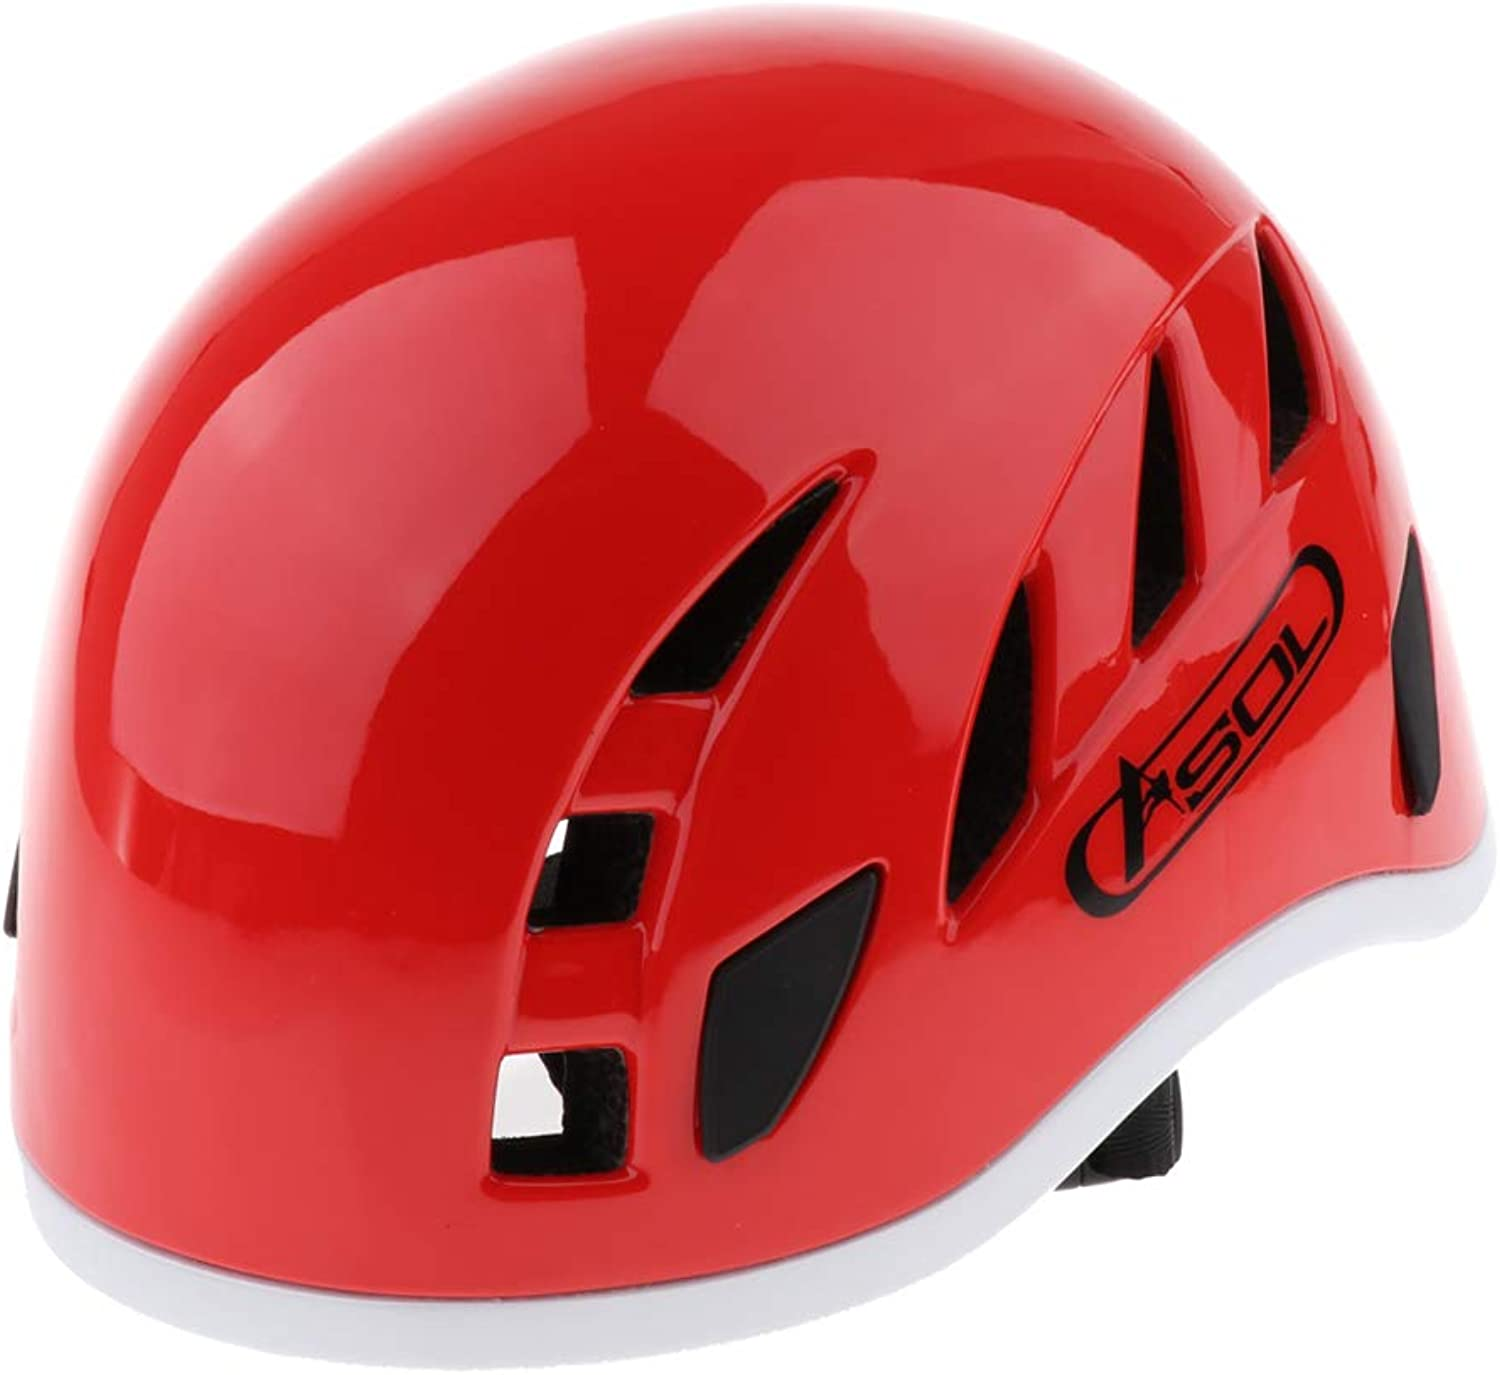 Baoblaze Rescue Hard Hat Work at Height, Rock Climbing Helmet, Adjutable and Ventilated